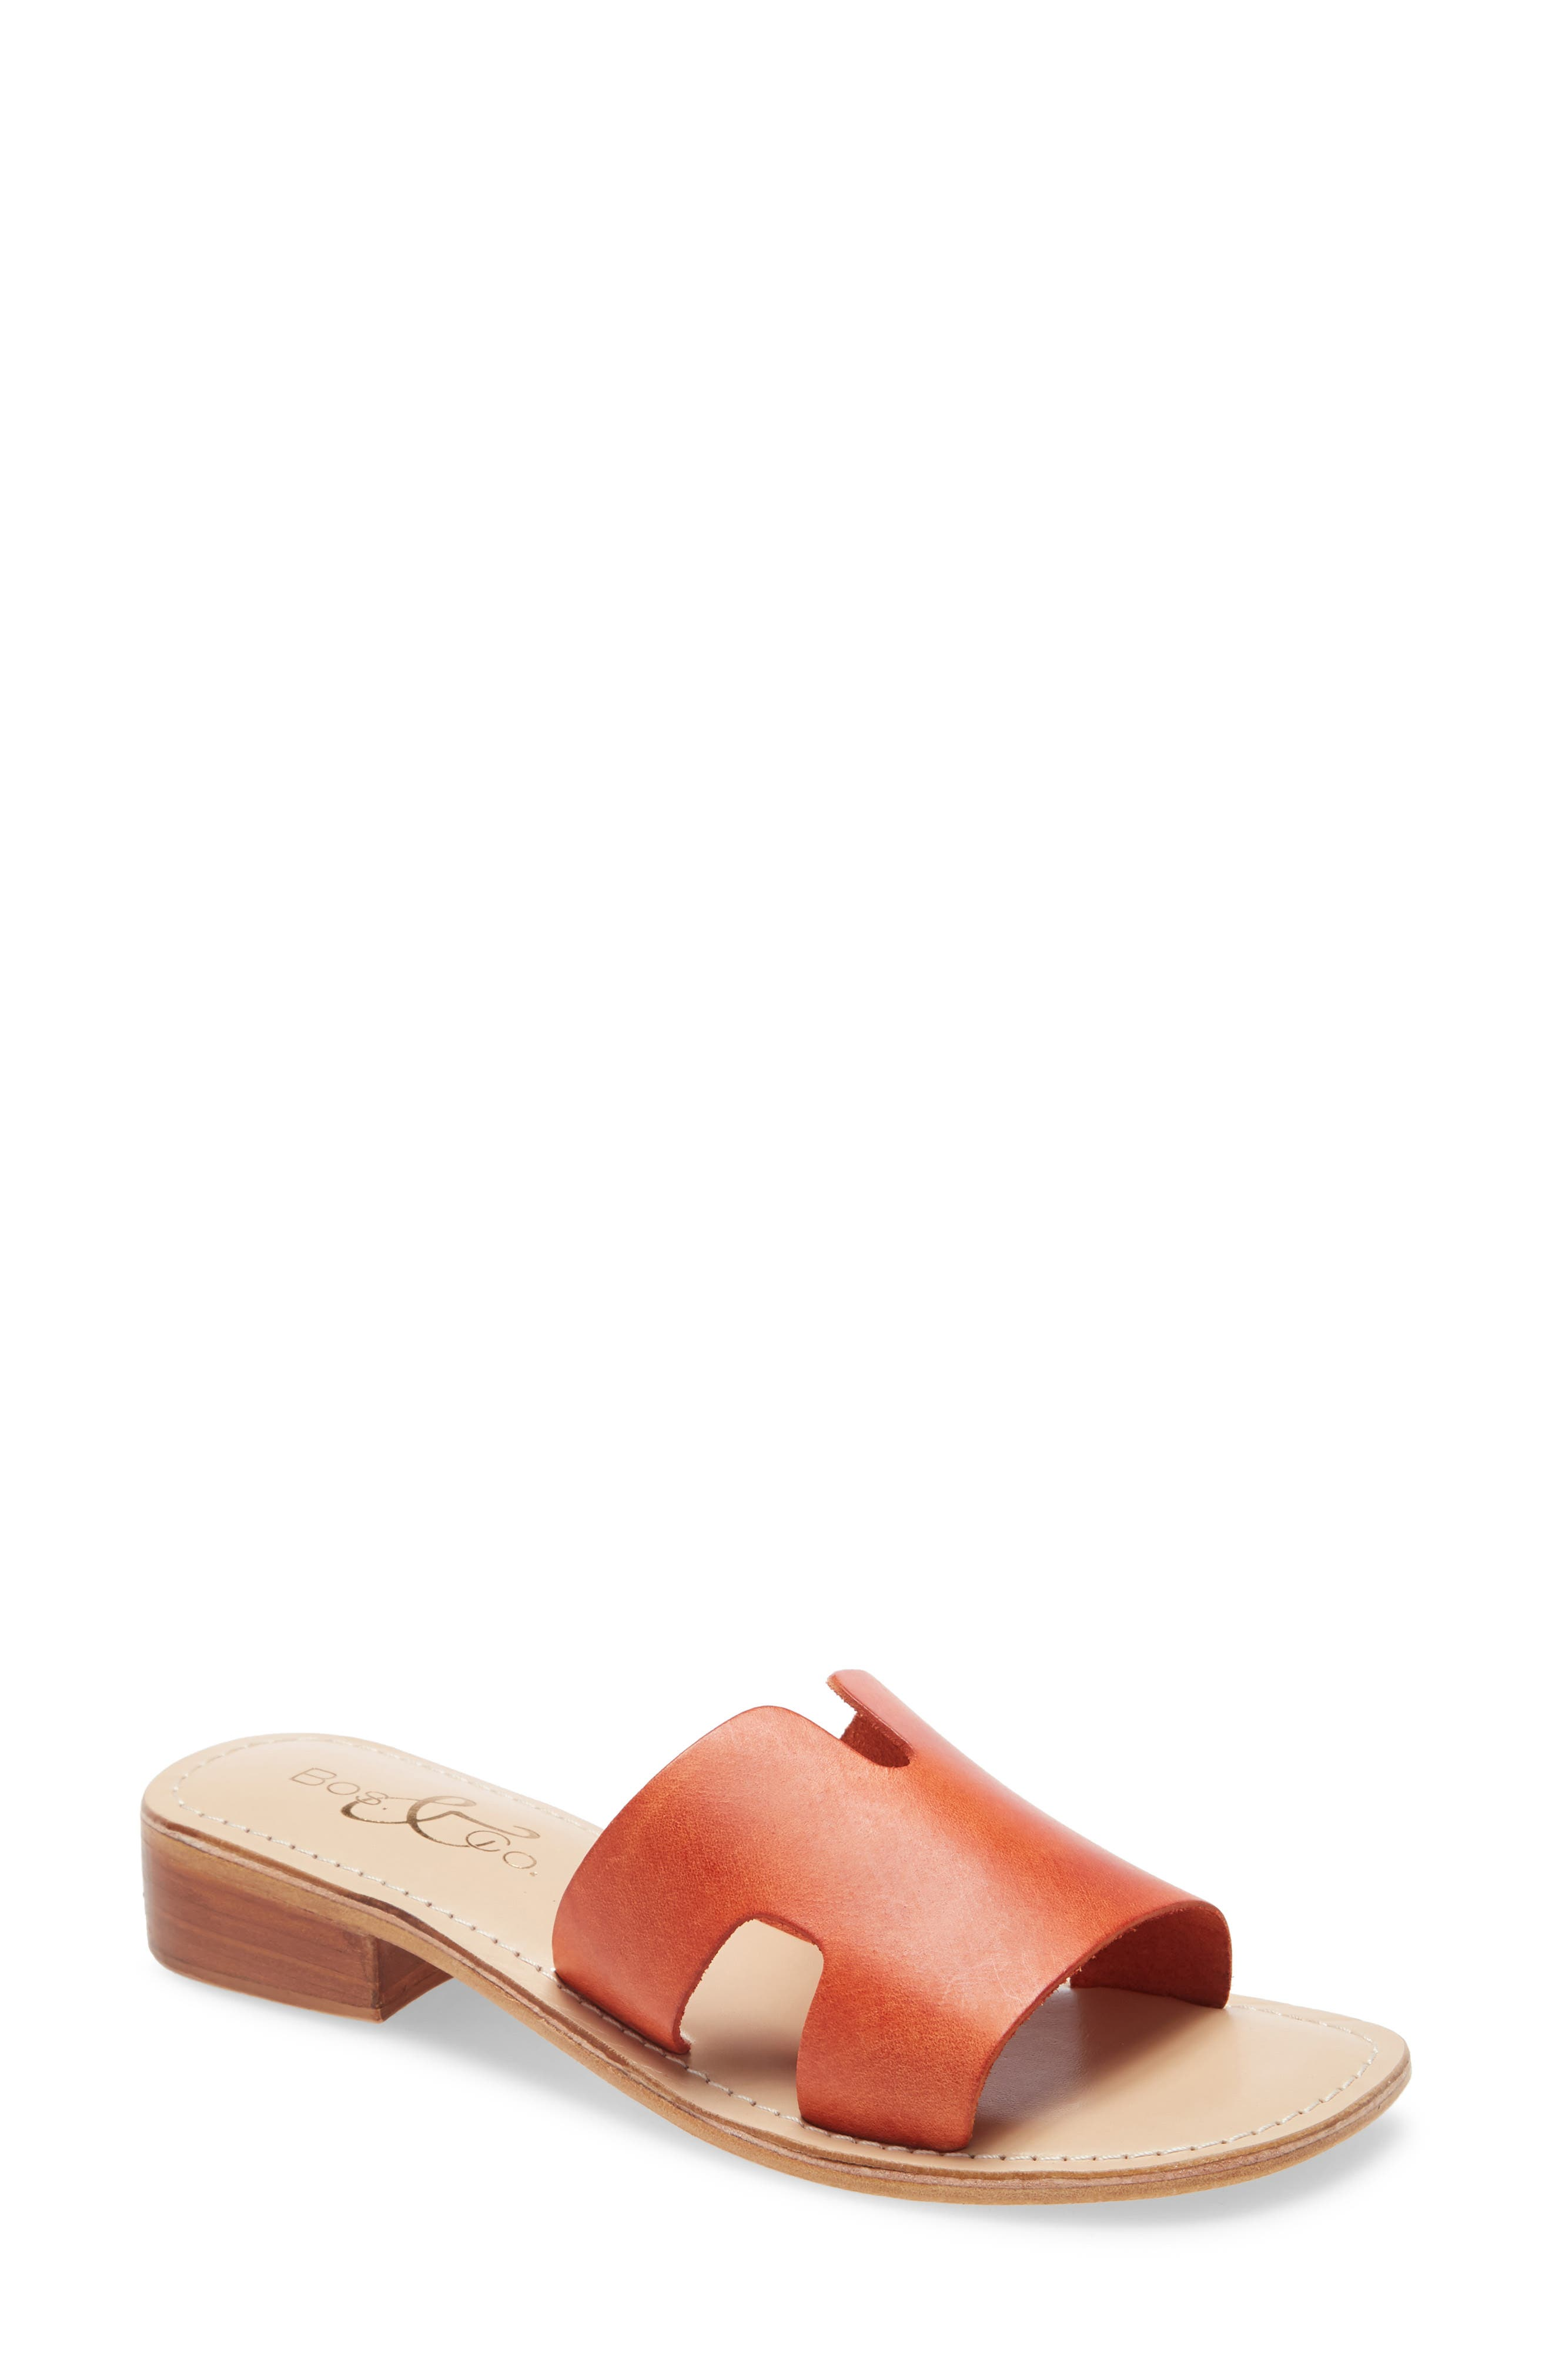 Breezy cutouts elevate the warm-weather appeal of an essential slide sandal grounded by a low stacked heel. Style Name: Bos. & Co. Imani Slide Sandal (Women). Style Number: 6002121. Available in stores.